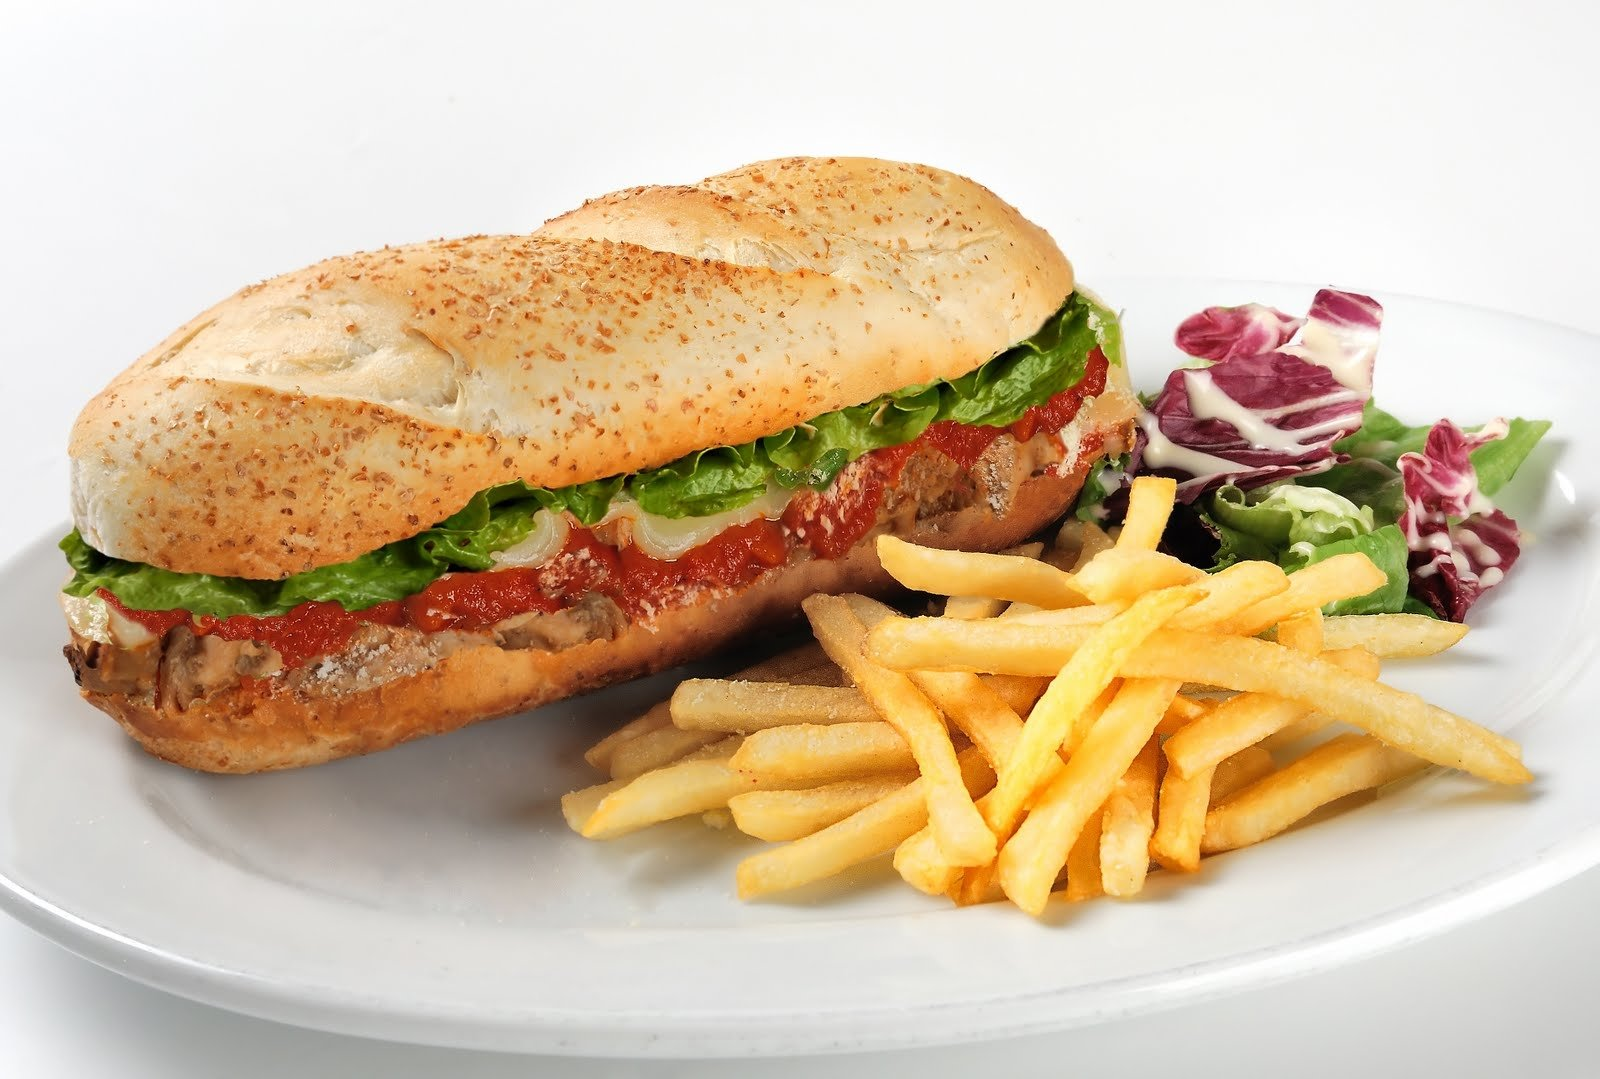 Submarine Sandwich With Fries Called Chips In Australia